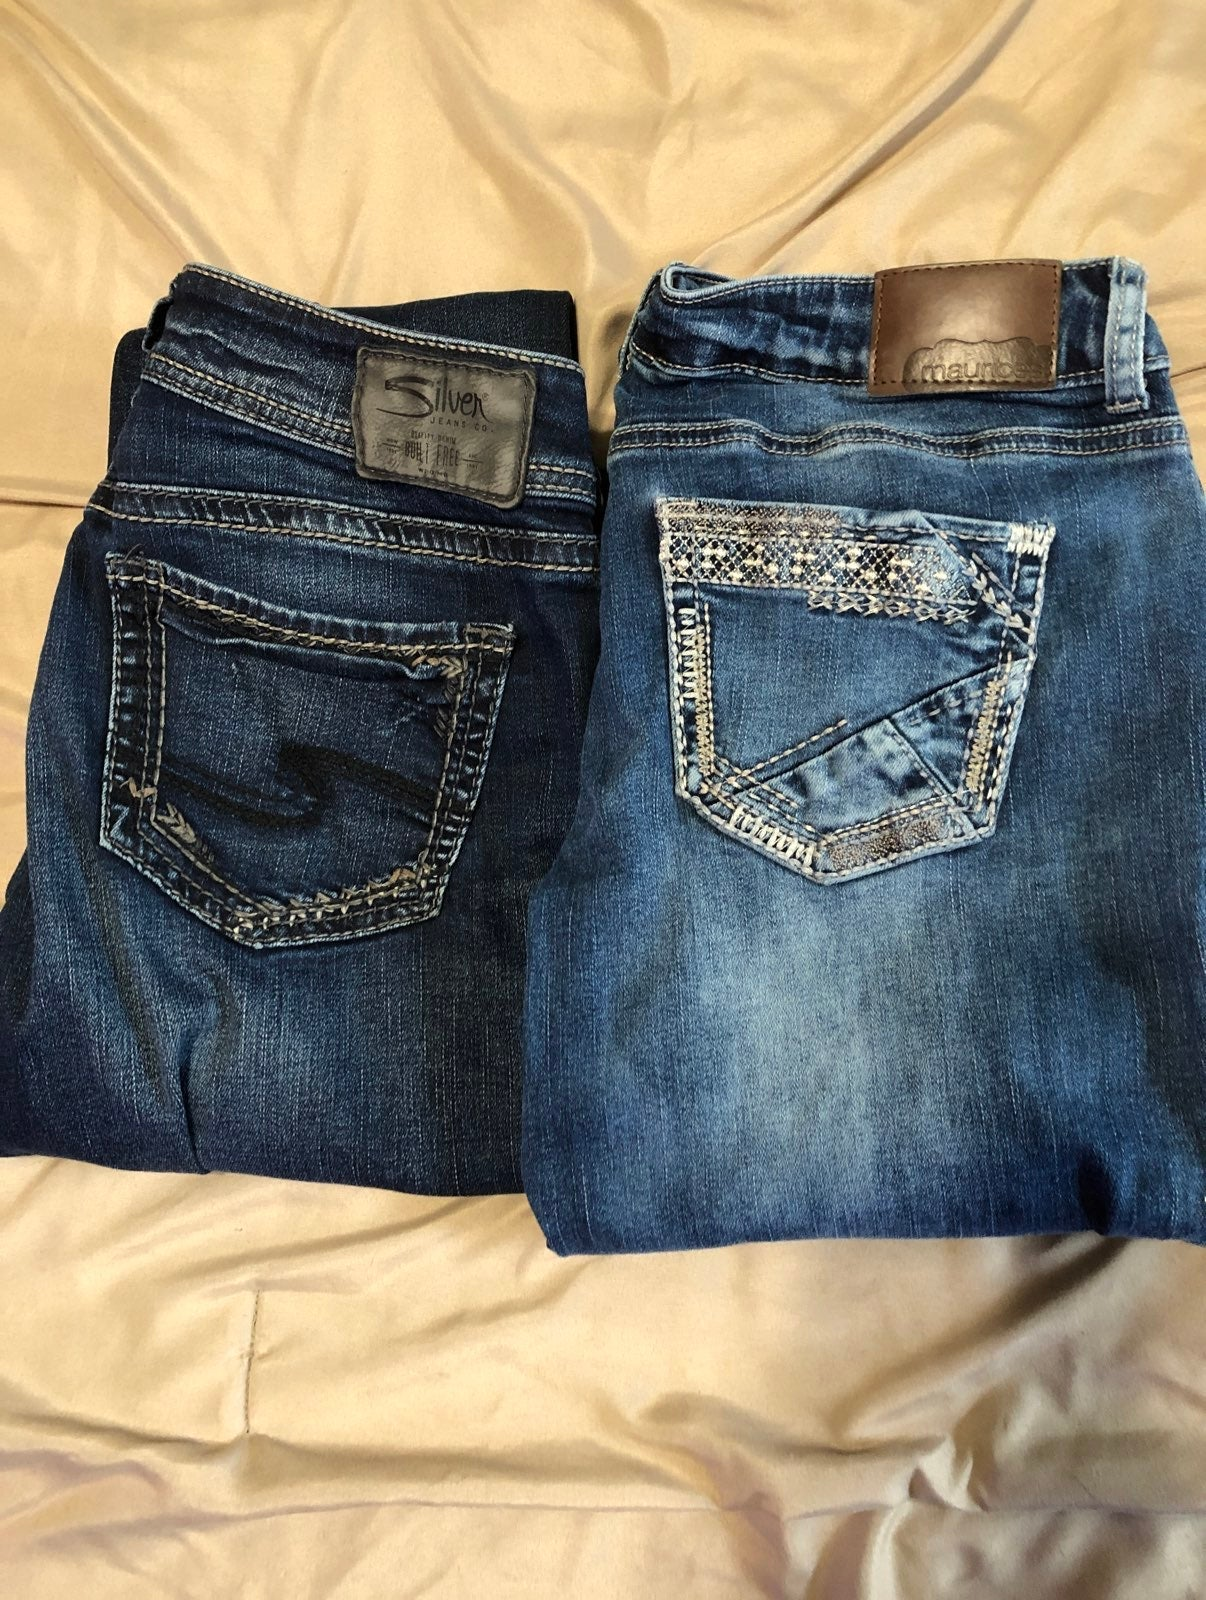 Womens Jeans 2 pairs Silver and Maurices